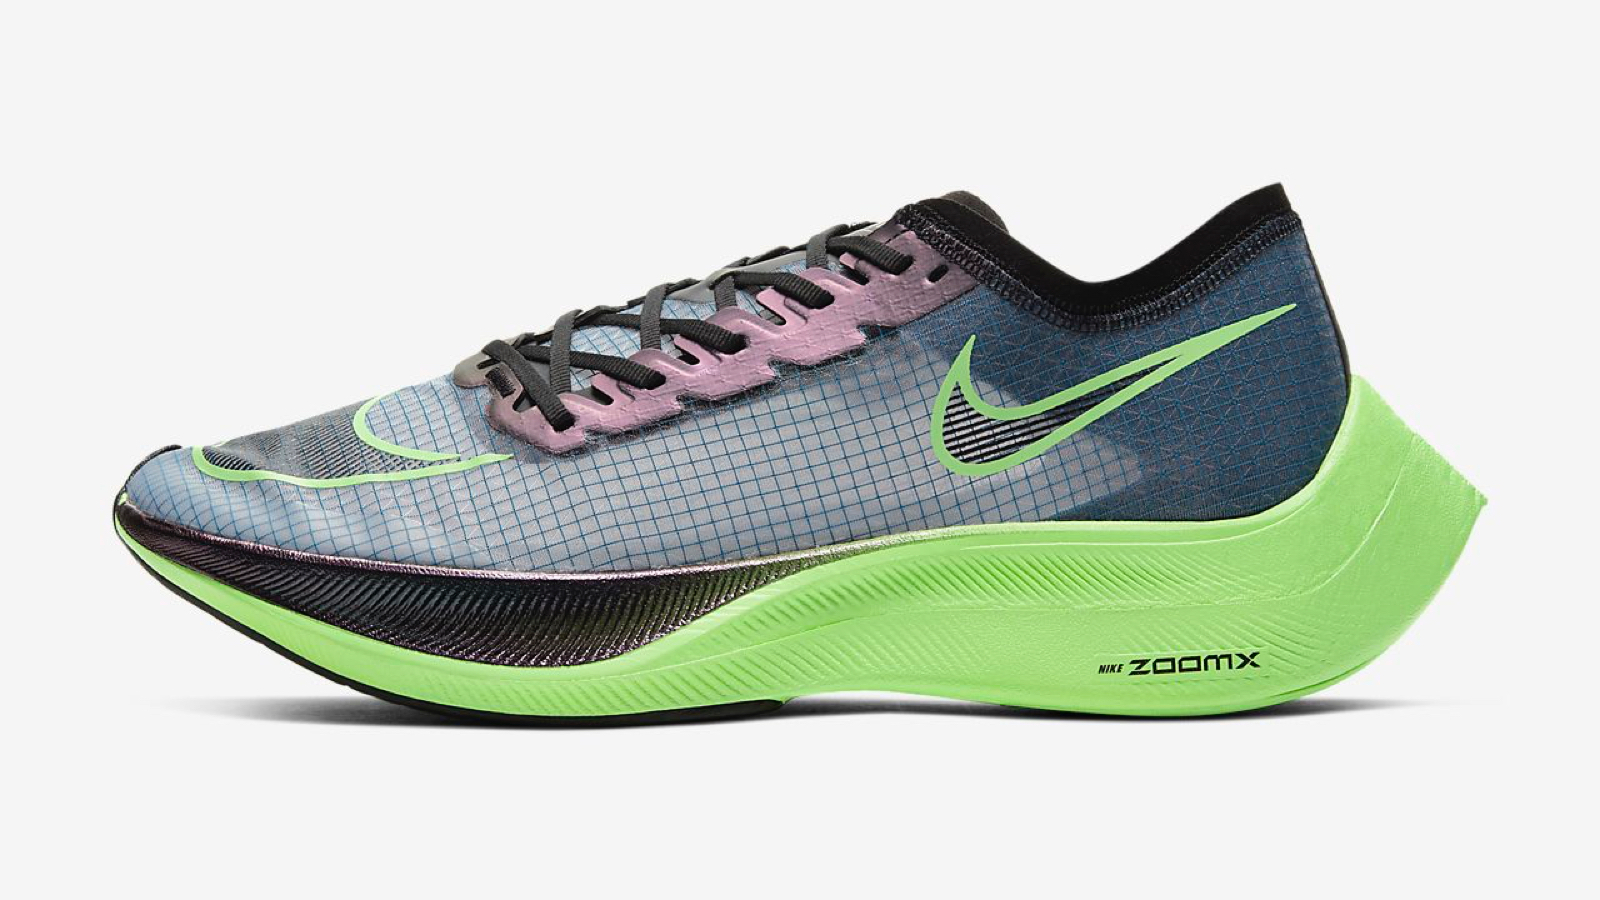 Nike ZoomX Vaporfly NEXT% BACK IN STOCK in the UK: it's the ...